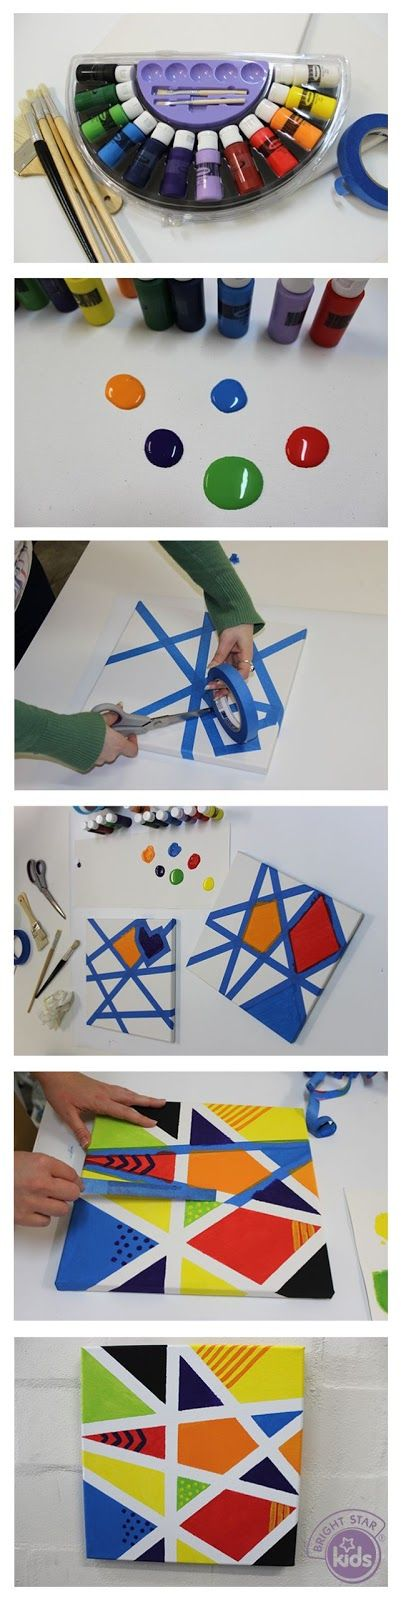 Fun art project for all family members!